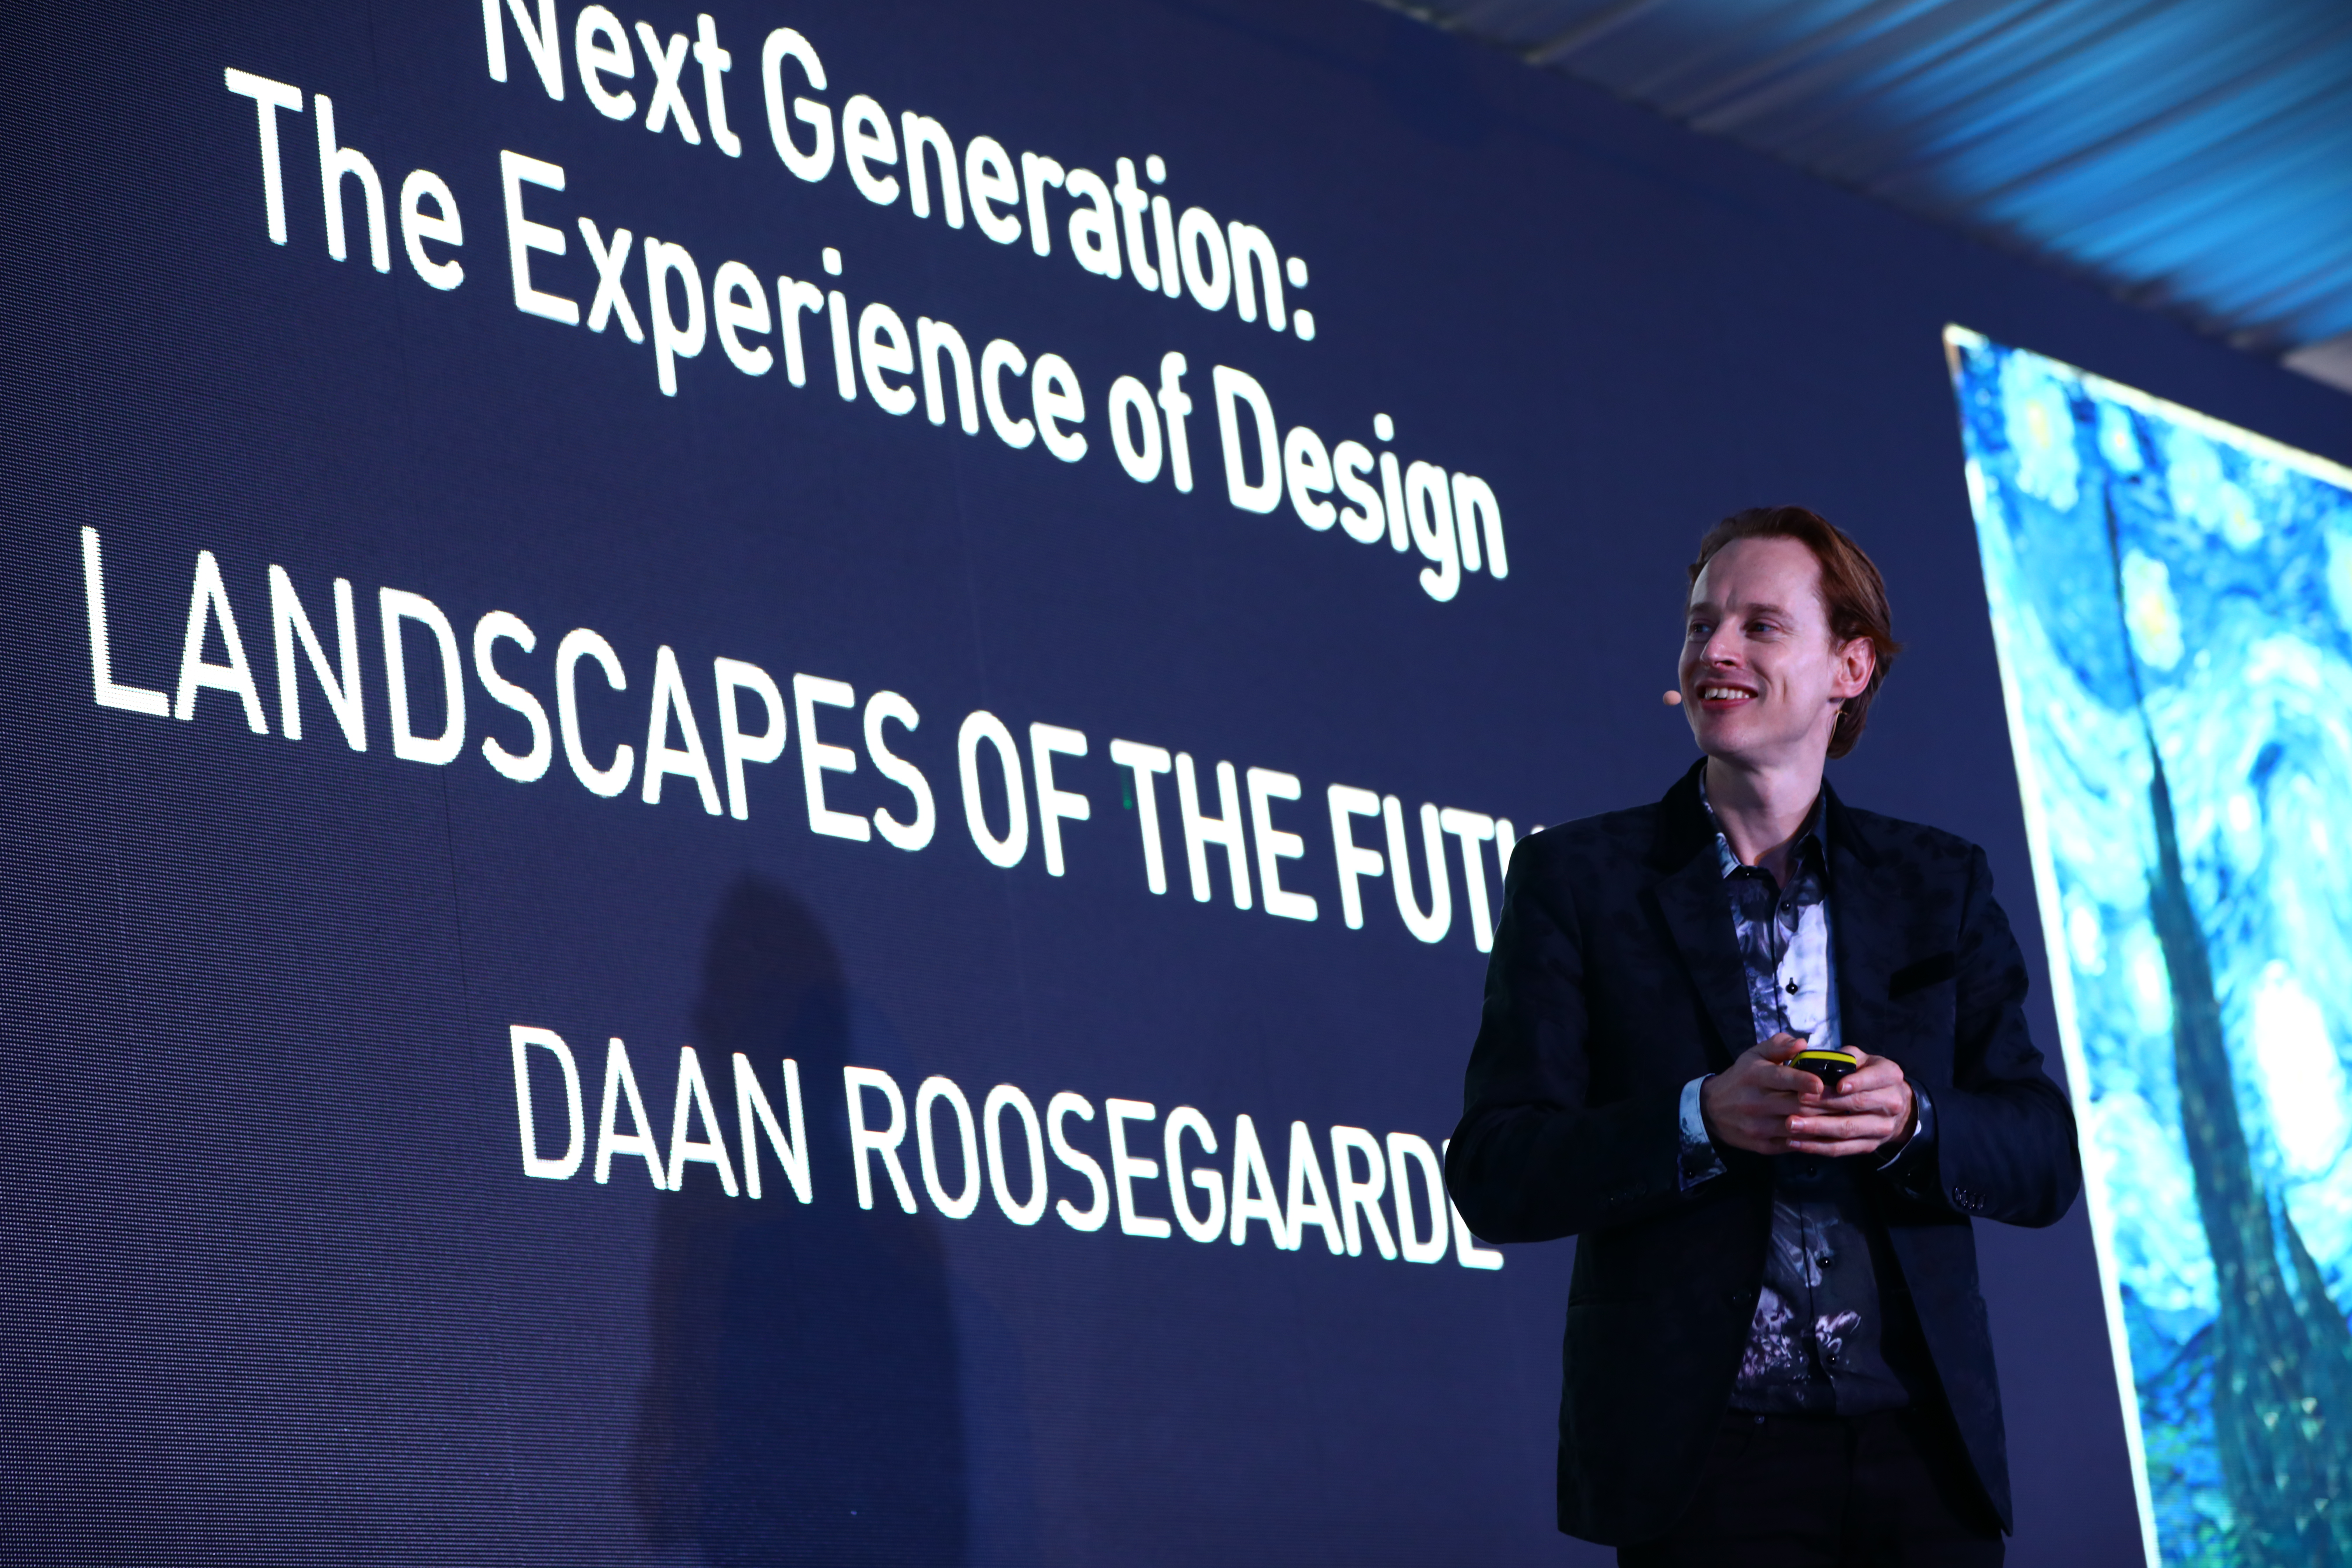 Daan Roosegaarde, founder of Studio Roosegaarde, presenting at the Innovation by Design Conference at Singapore Design Week.